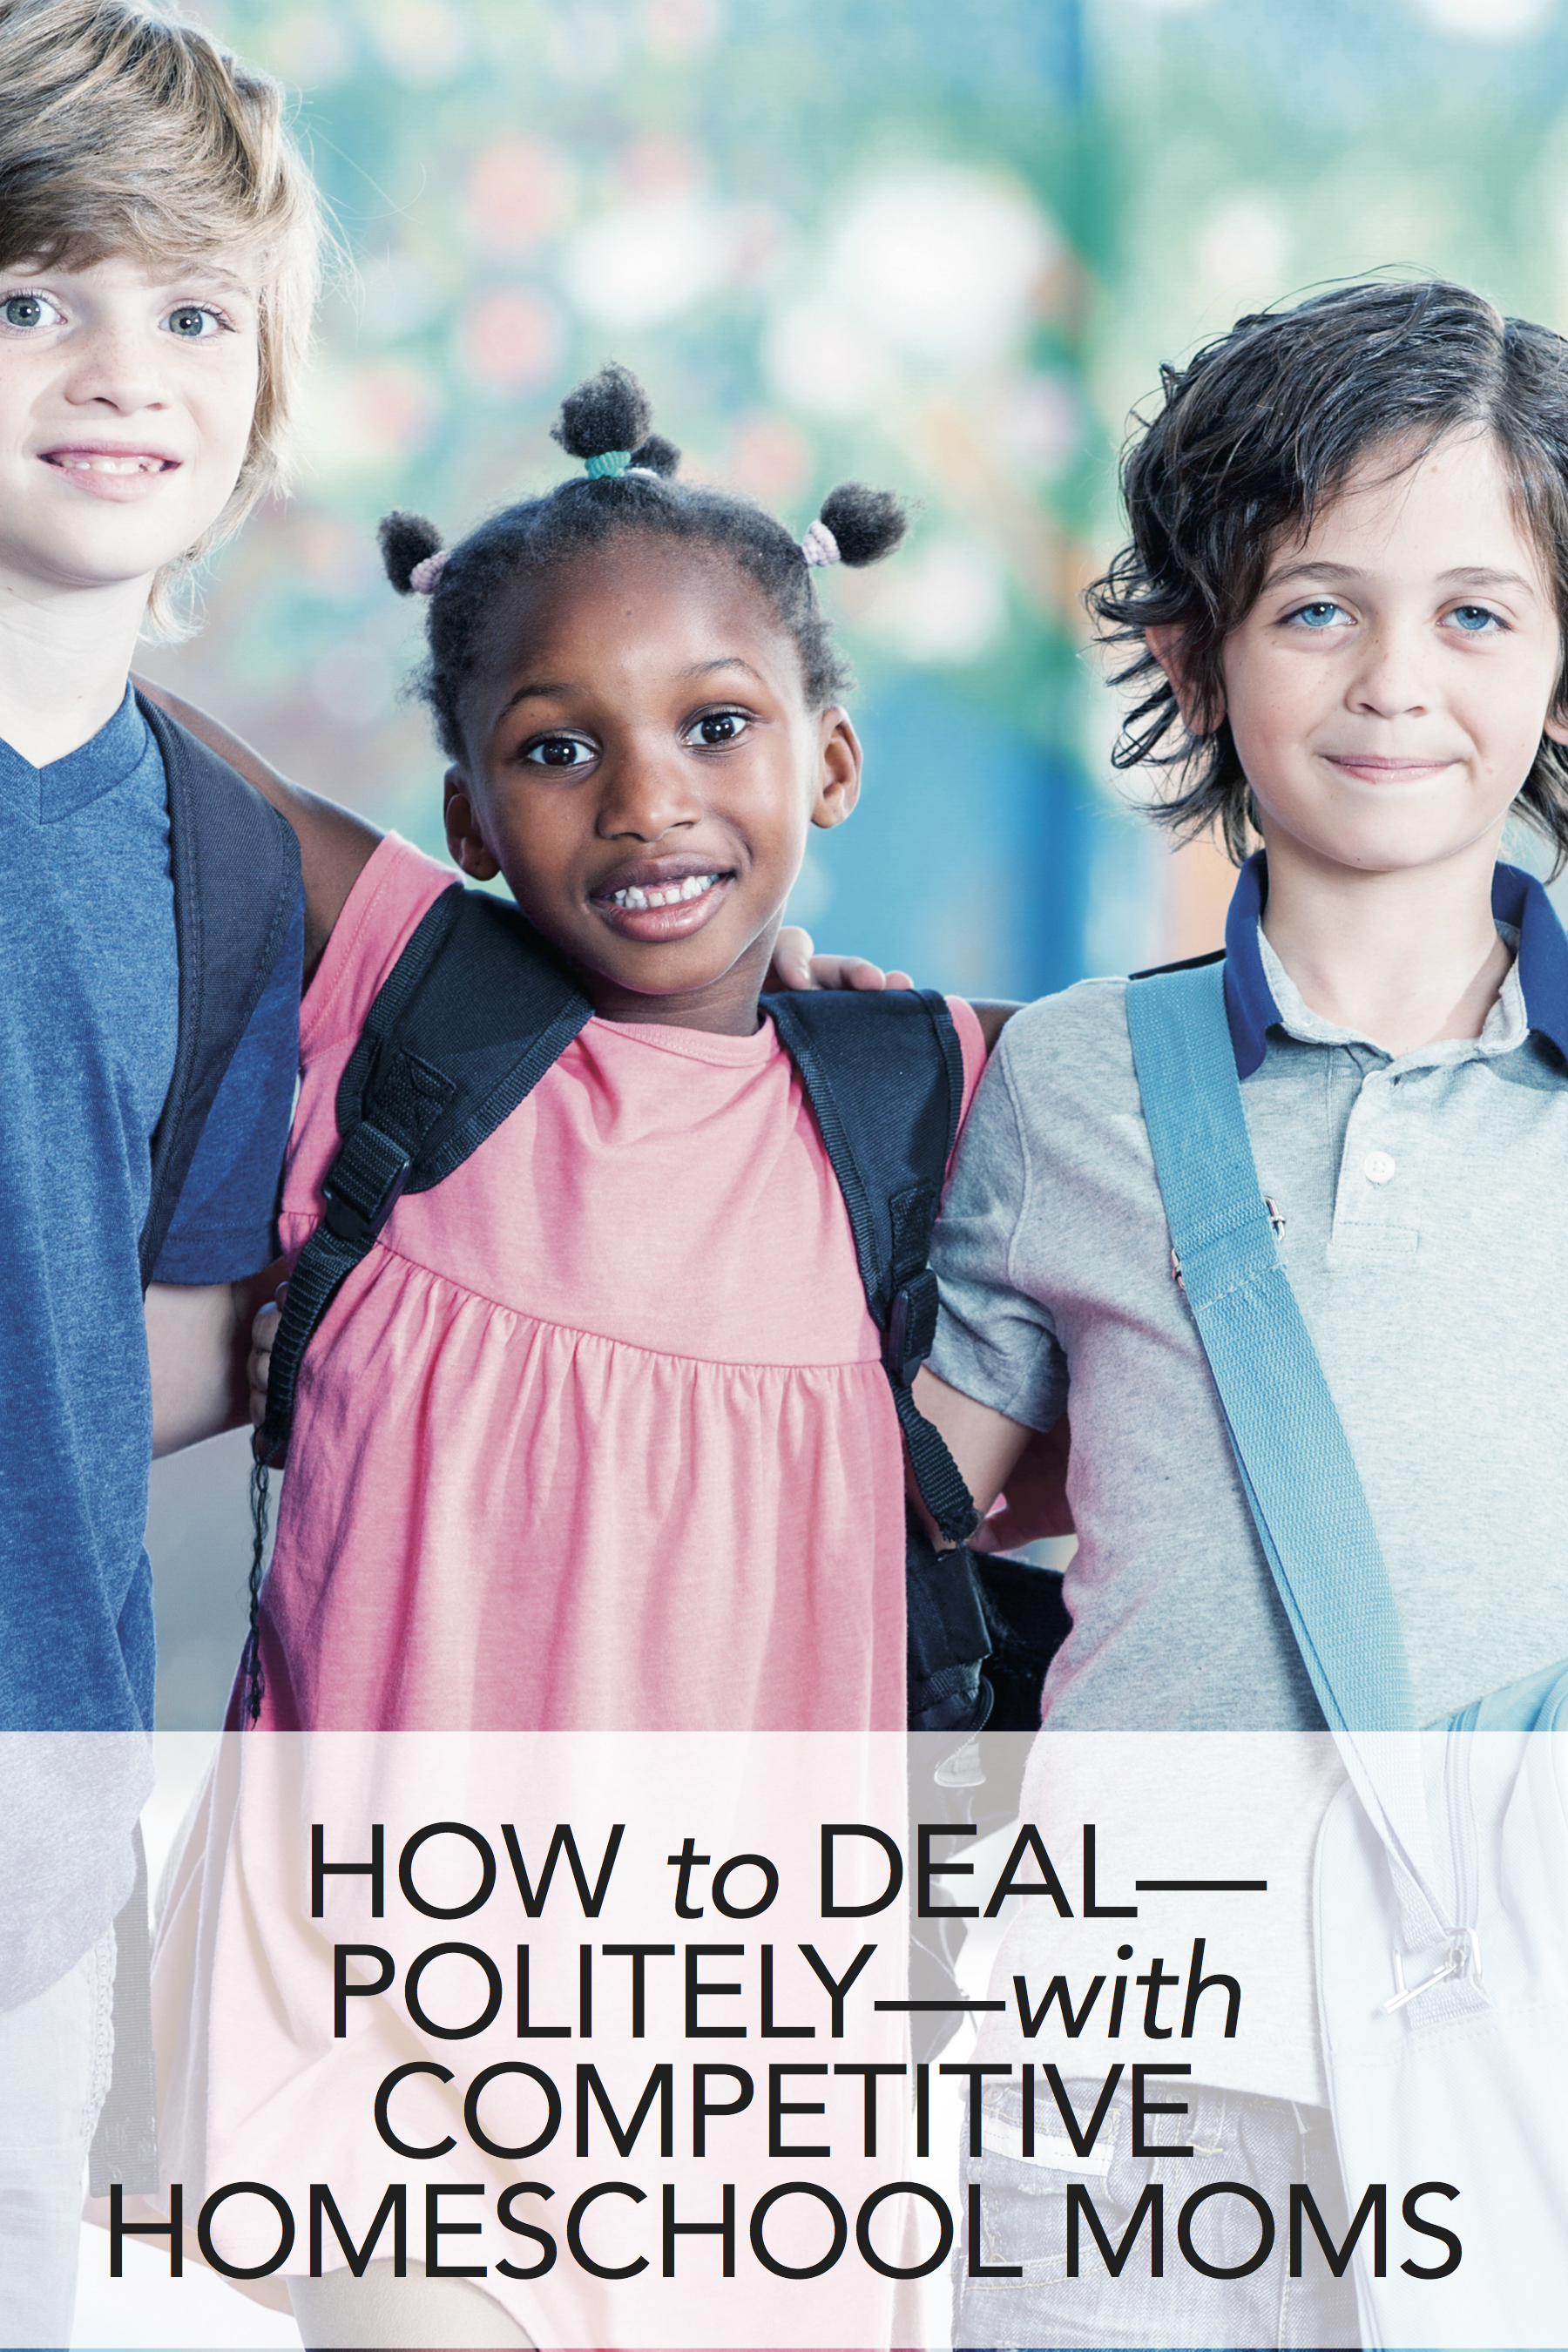 Great tips for dealing (politely) with homeschool moms who get competitive about how their kids are doing. #homeschool